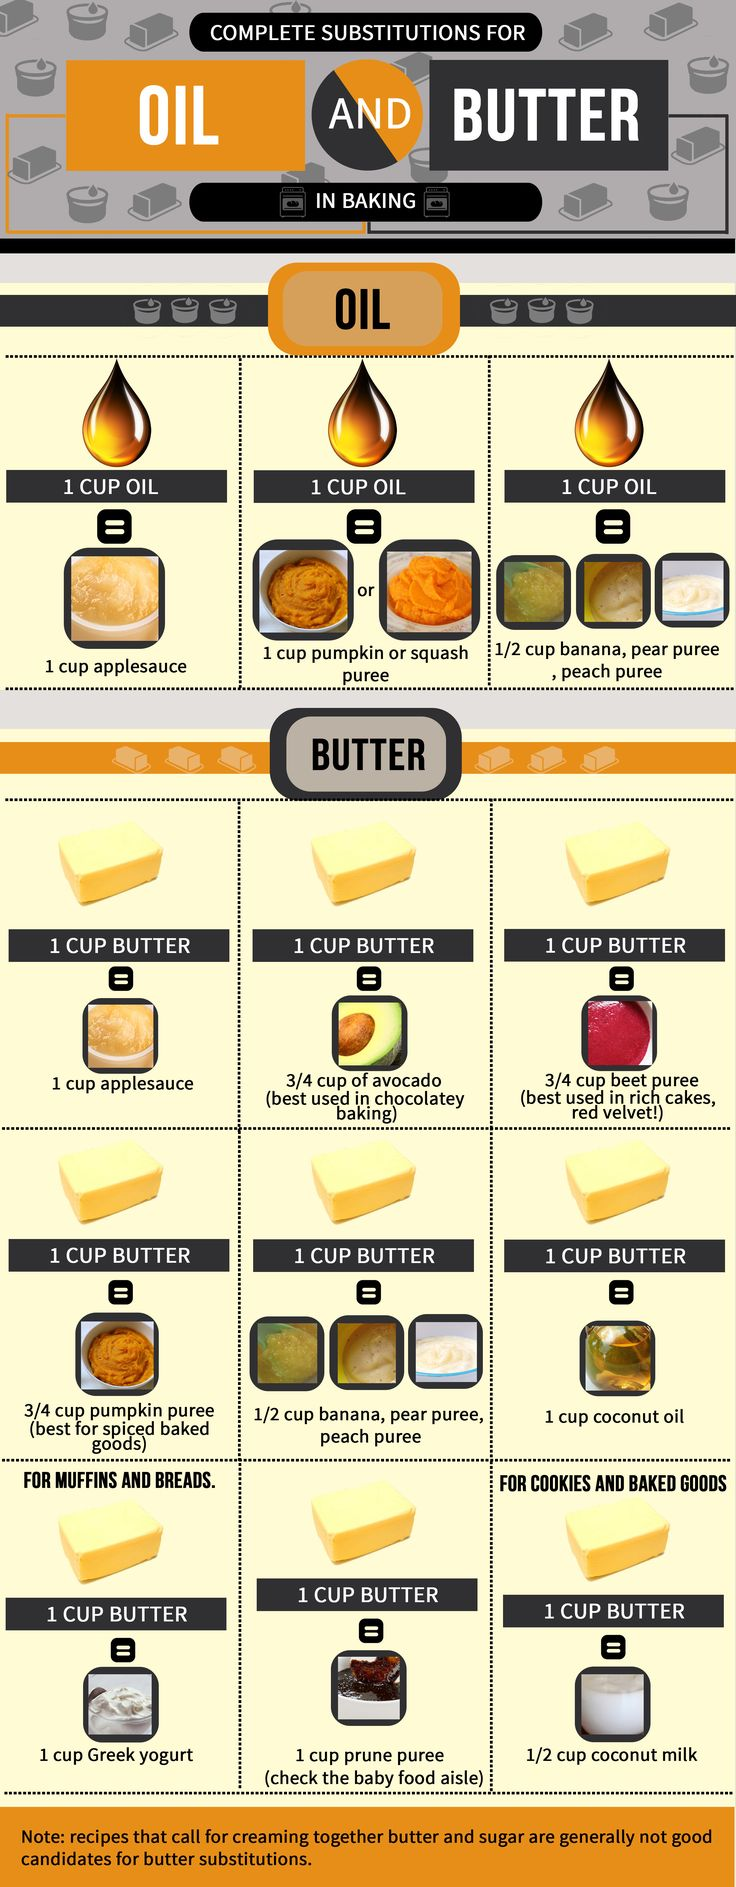 Baking Substitutions For Oil And Butter